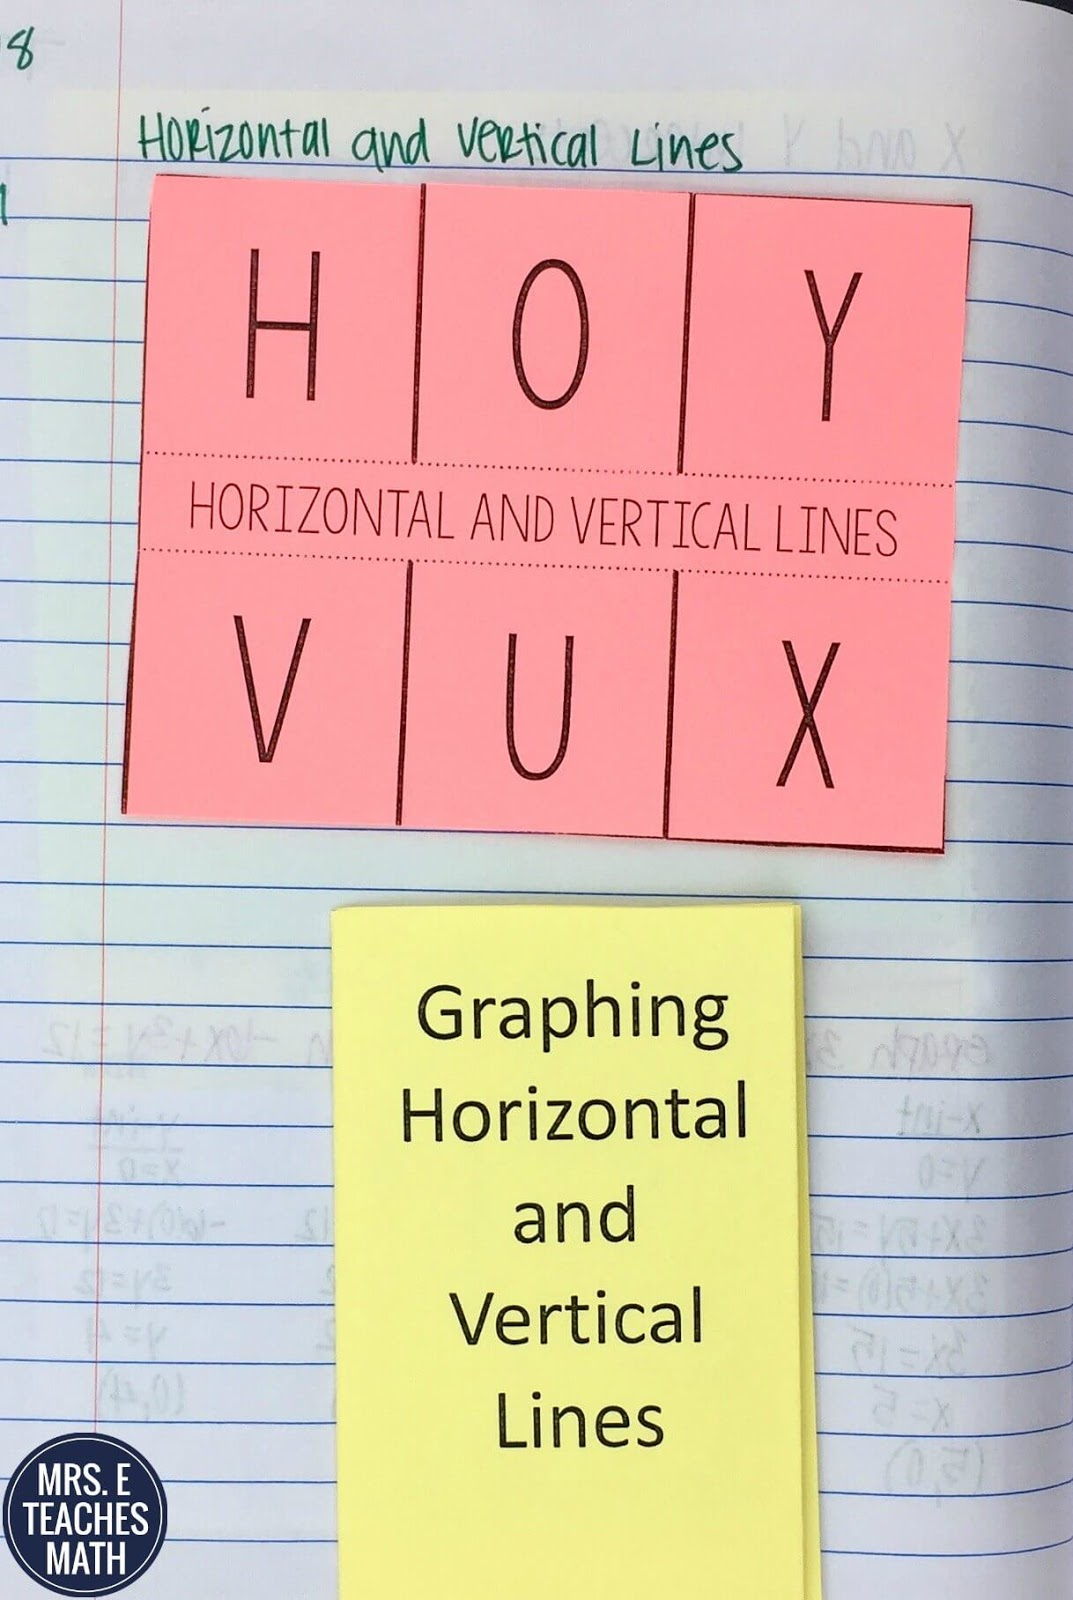 worksheet Graphing Horizontal And Vertical Lines Worksheet graphing horizontal and vertical lines inb pages mrs e teaches math interactive notebook idea for algebra 1